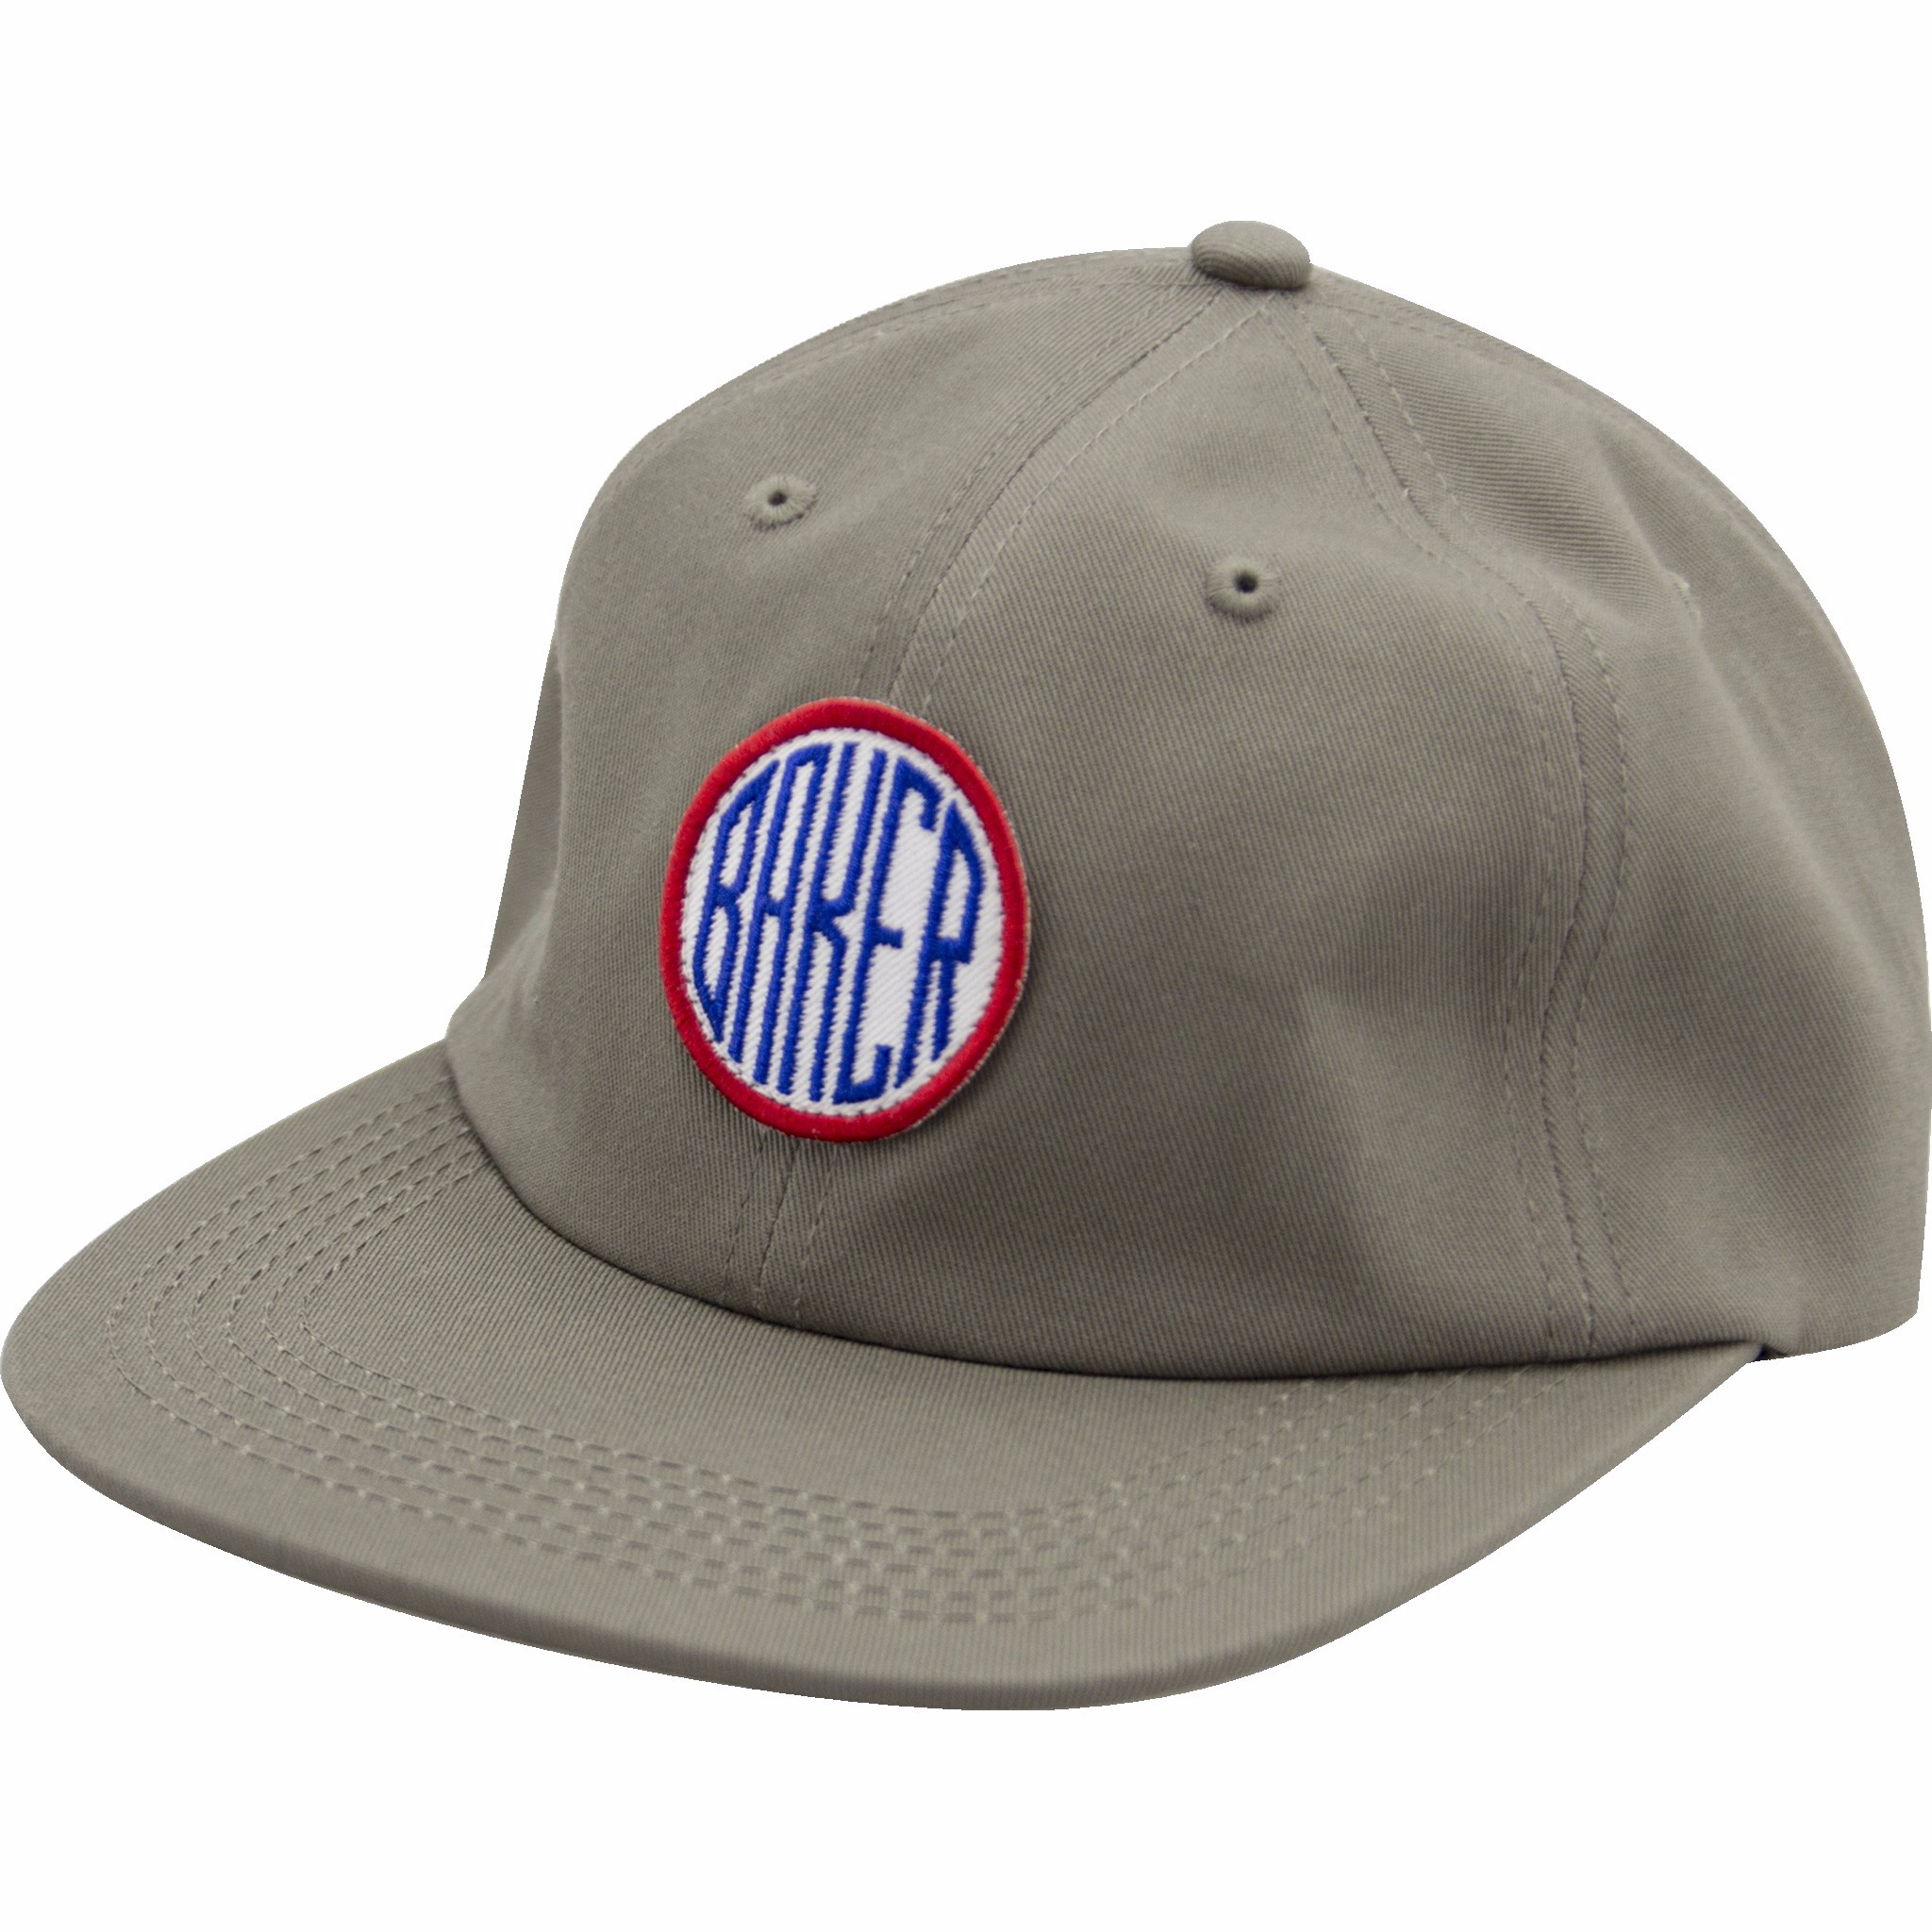 Baker Cap ROTC Olive Unstructured Strapback Skateboard Dad Hat FREE POST New